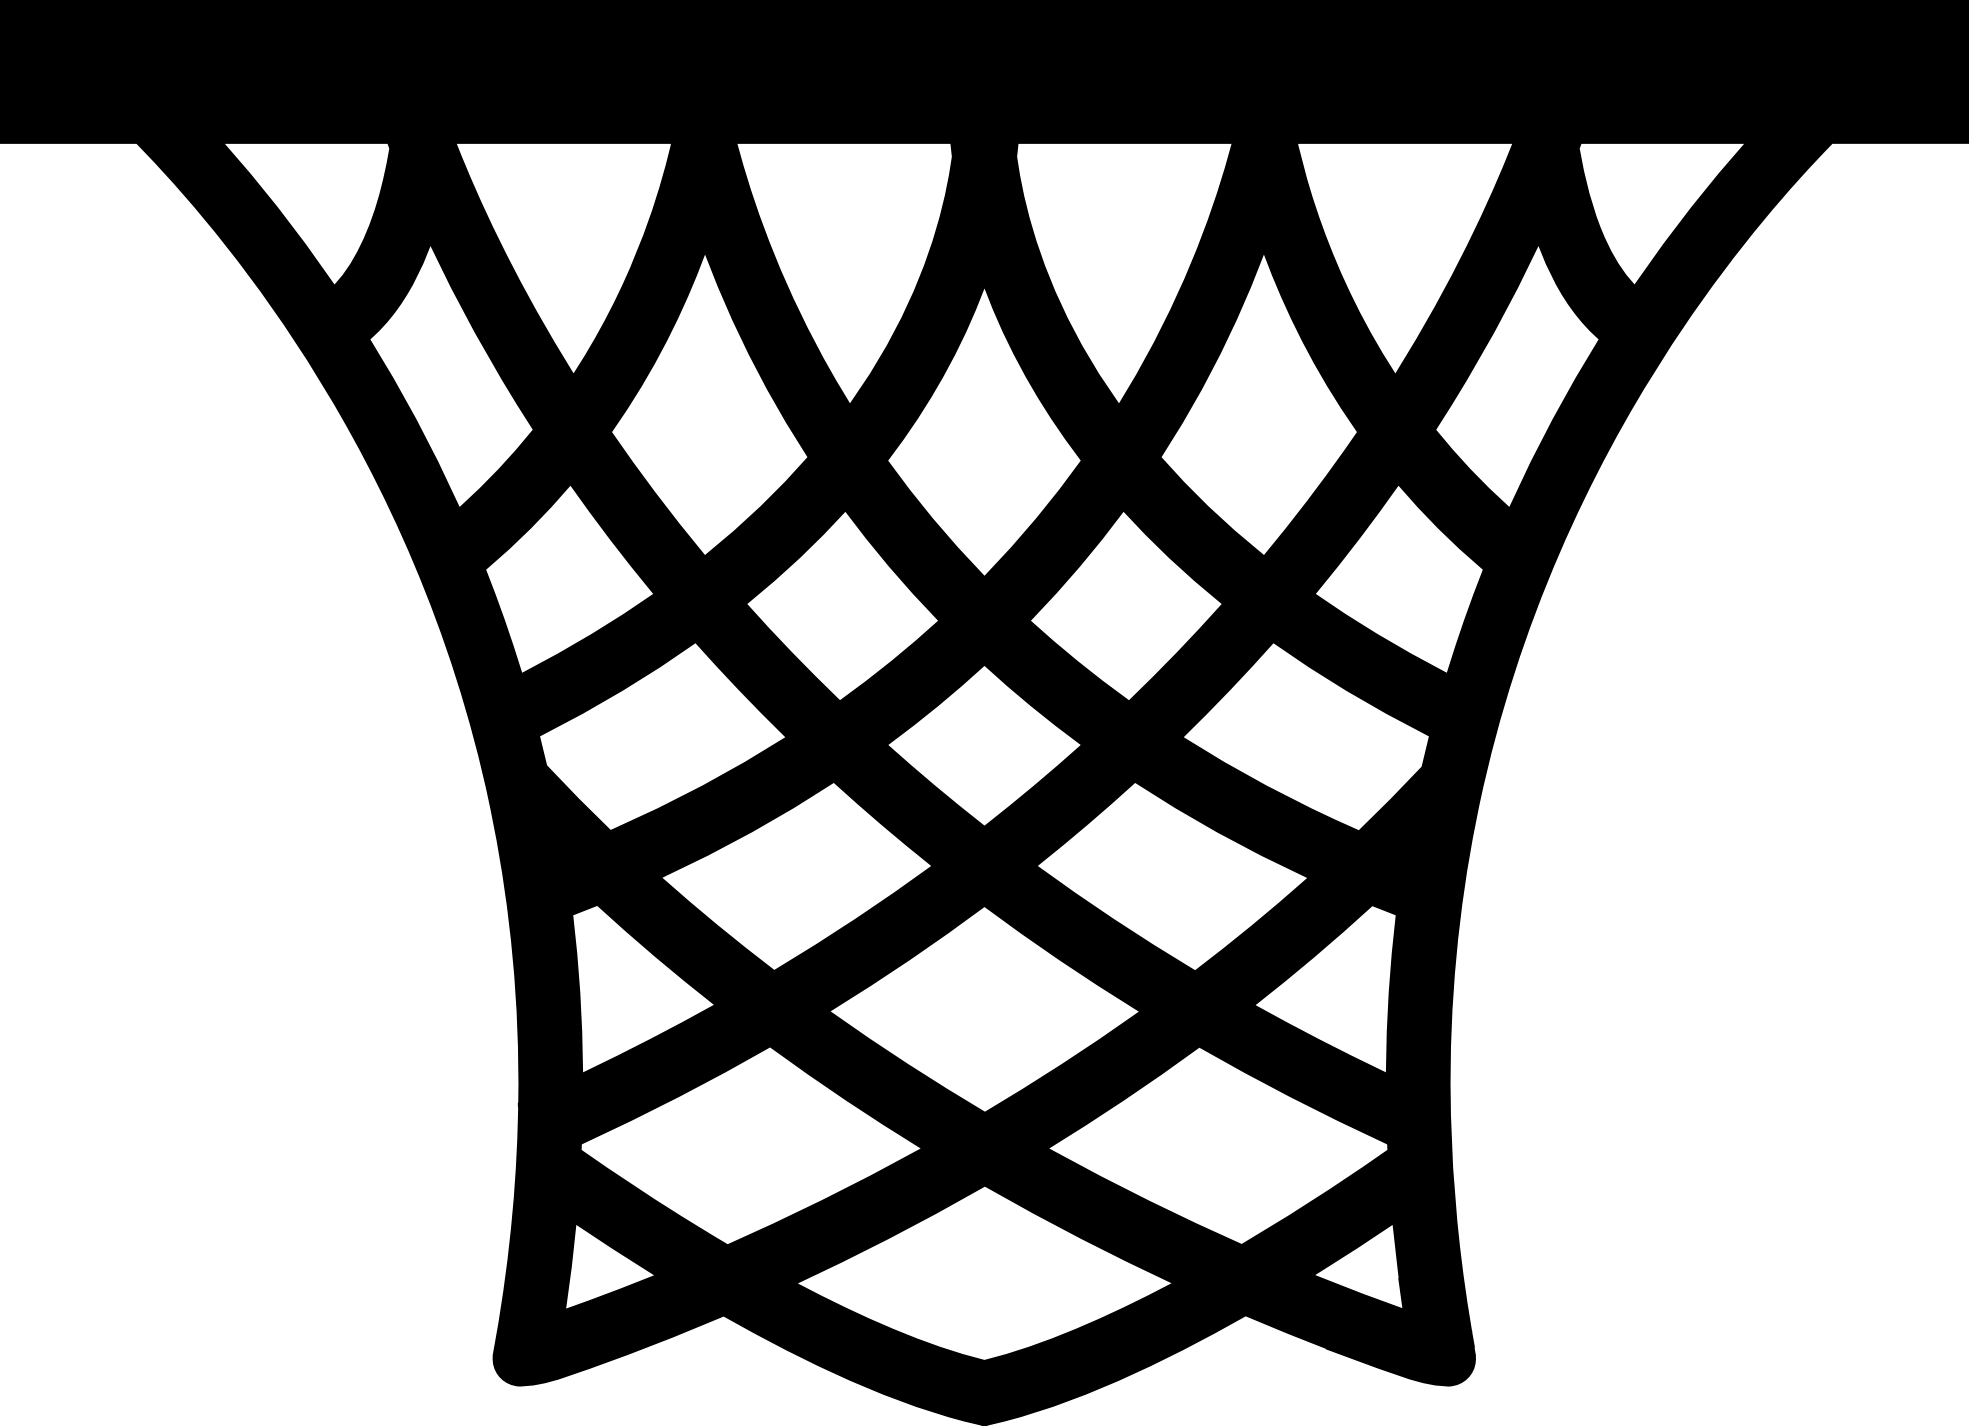 Distressed basketball and net clipart picture black and white library 28+ Collection of Basketball Goal Clipart Black And White | High ... picture black and white library